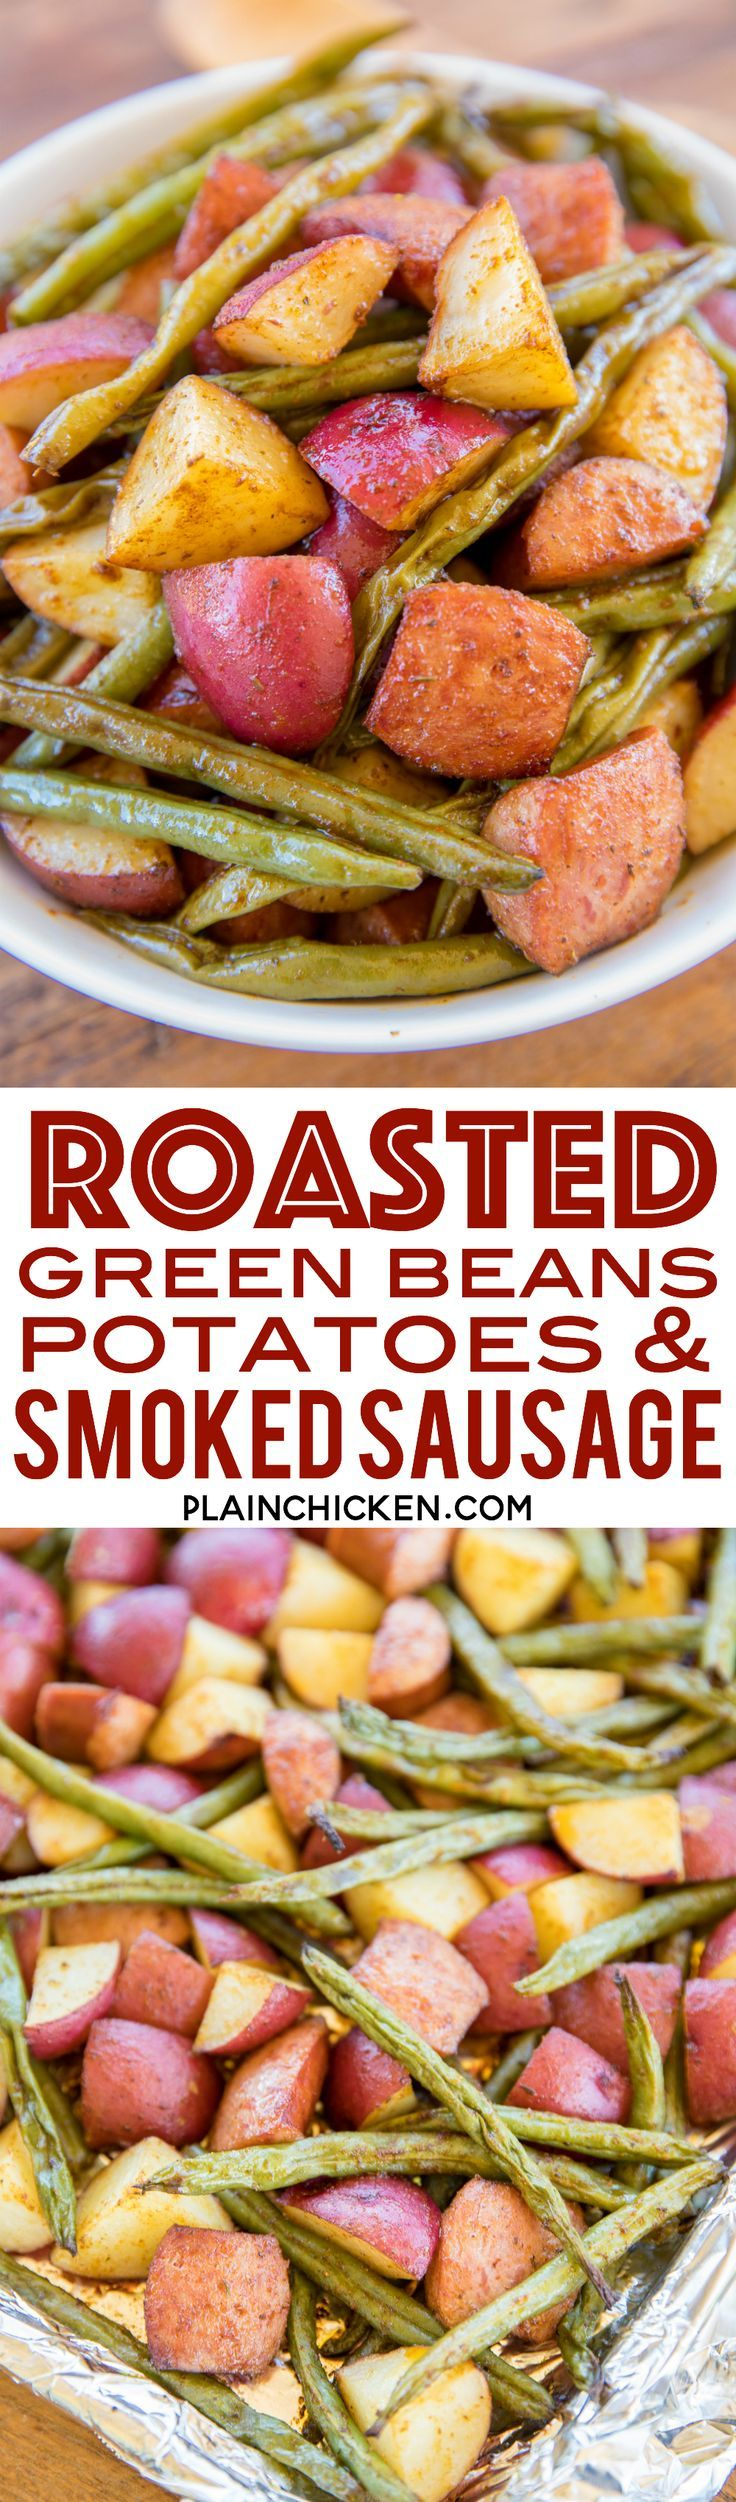 Roasted green beans potatoes and smoked sausage easy